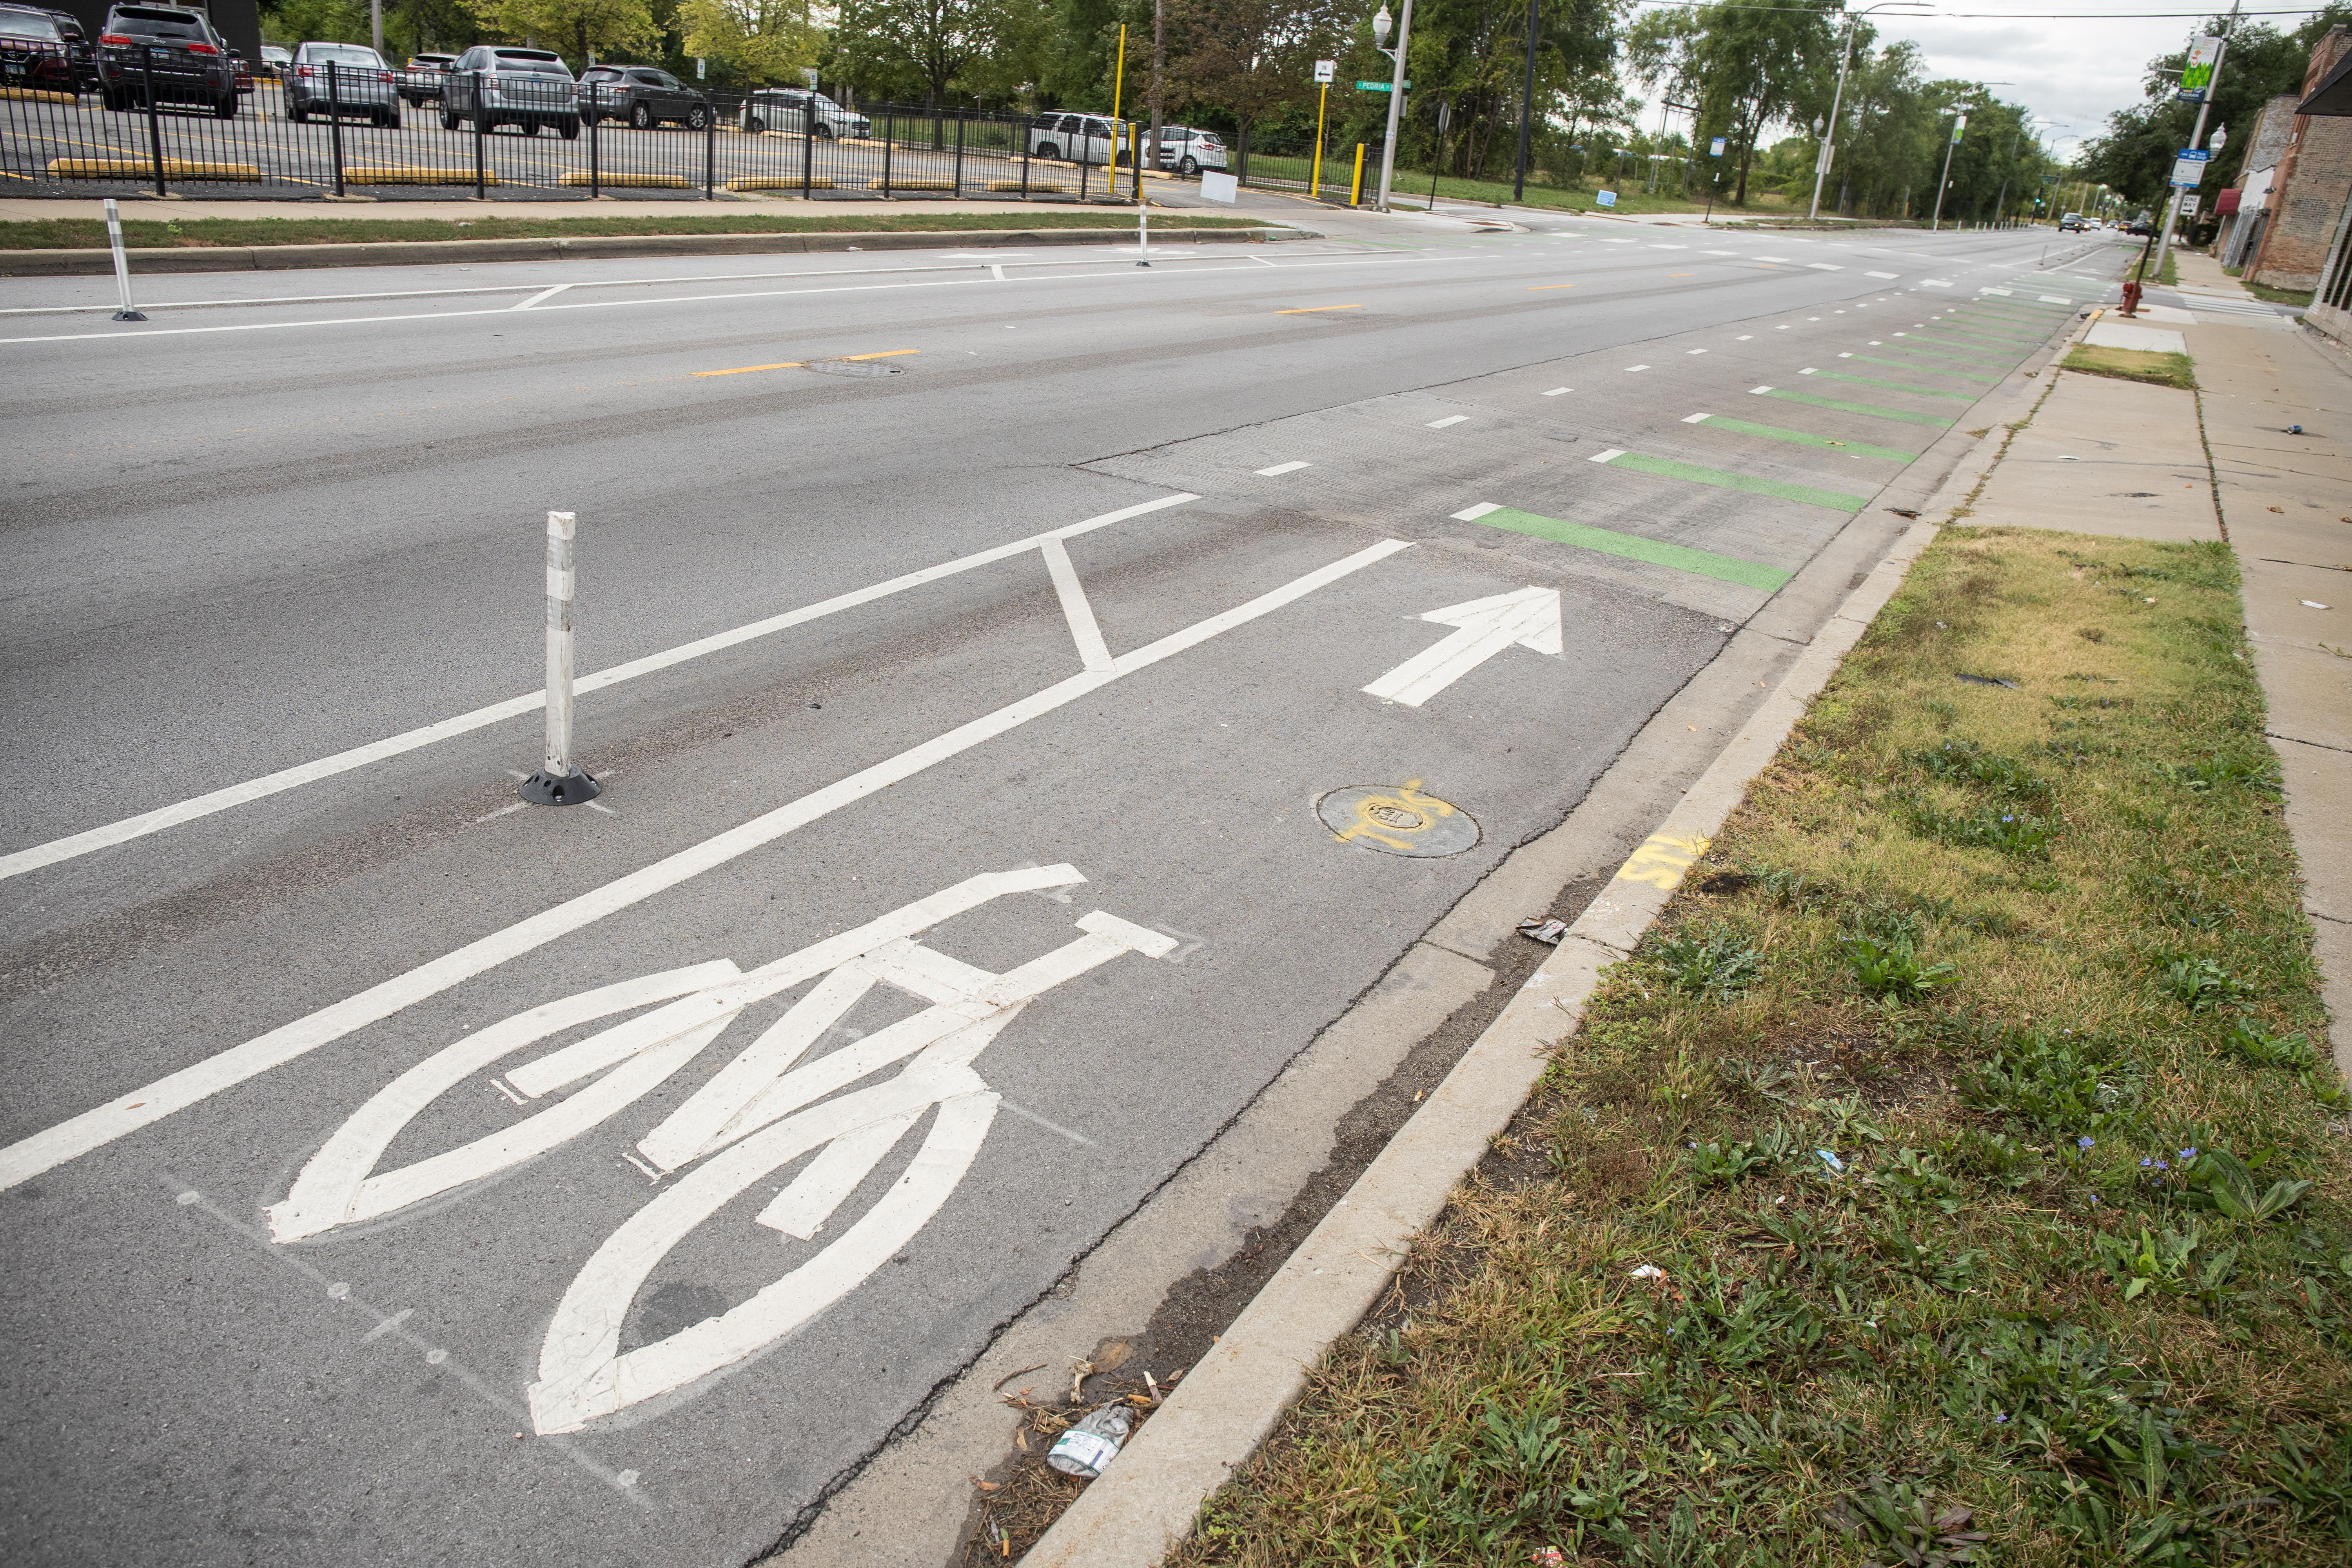 A new bike lane along West 119th Street and South Green Street in the West Pullman neighborhood is seen in this photo, Wednesday morning, Sept. 22, 2021. The Chicago Department of Transportation announced Wednesday that they are upgrading and building 100 miles of bike lanes across the city with the help of Chicago Mayor Lori Lightfoot's Chicago Works capital plan.